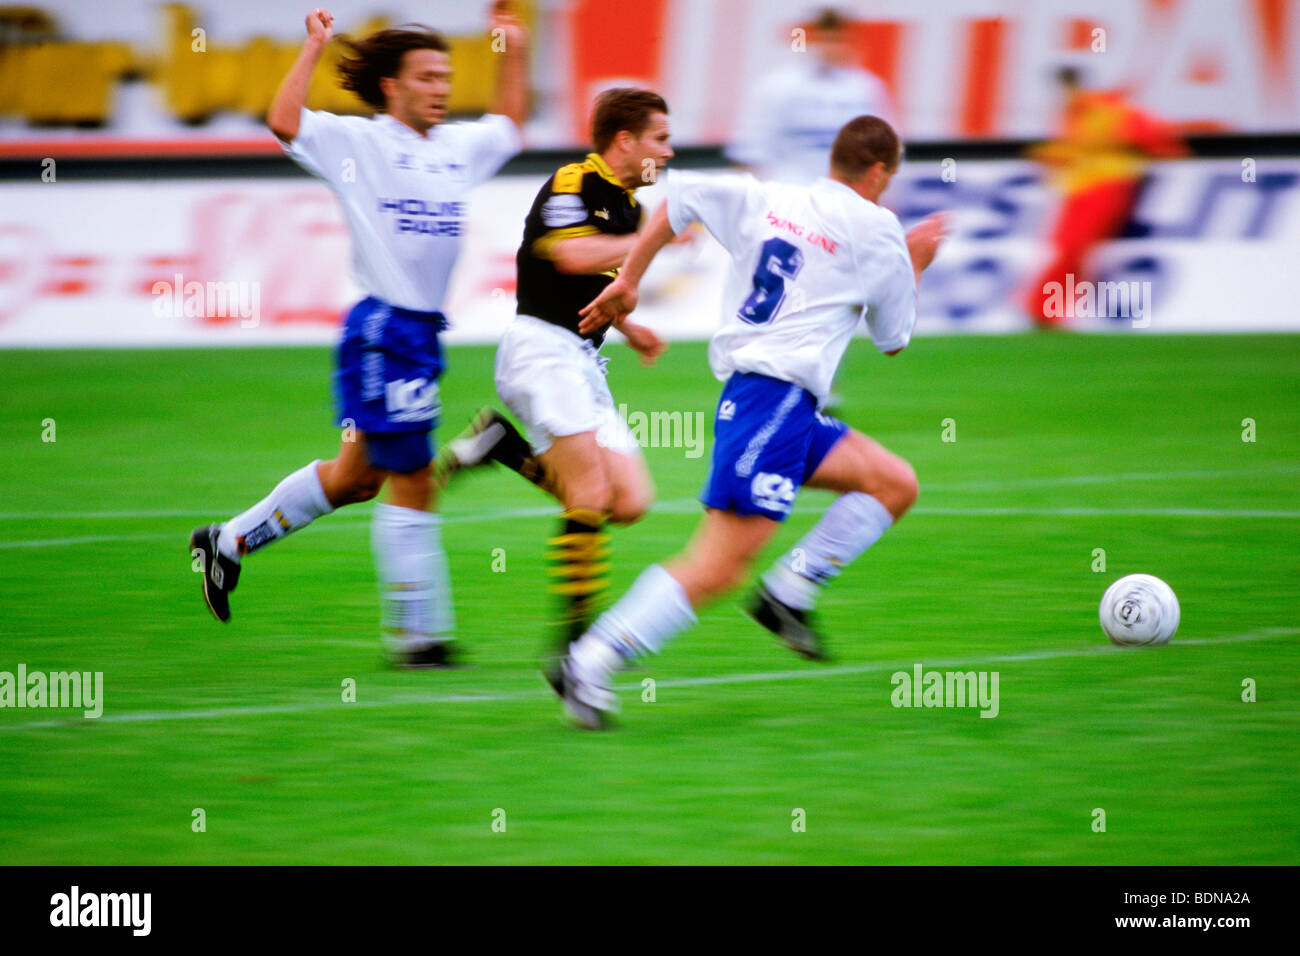 Professional soccer league teams playing game in Rosunda Stadium in Stockholm, Sweden - Stock Image